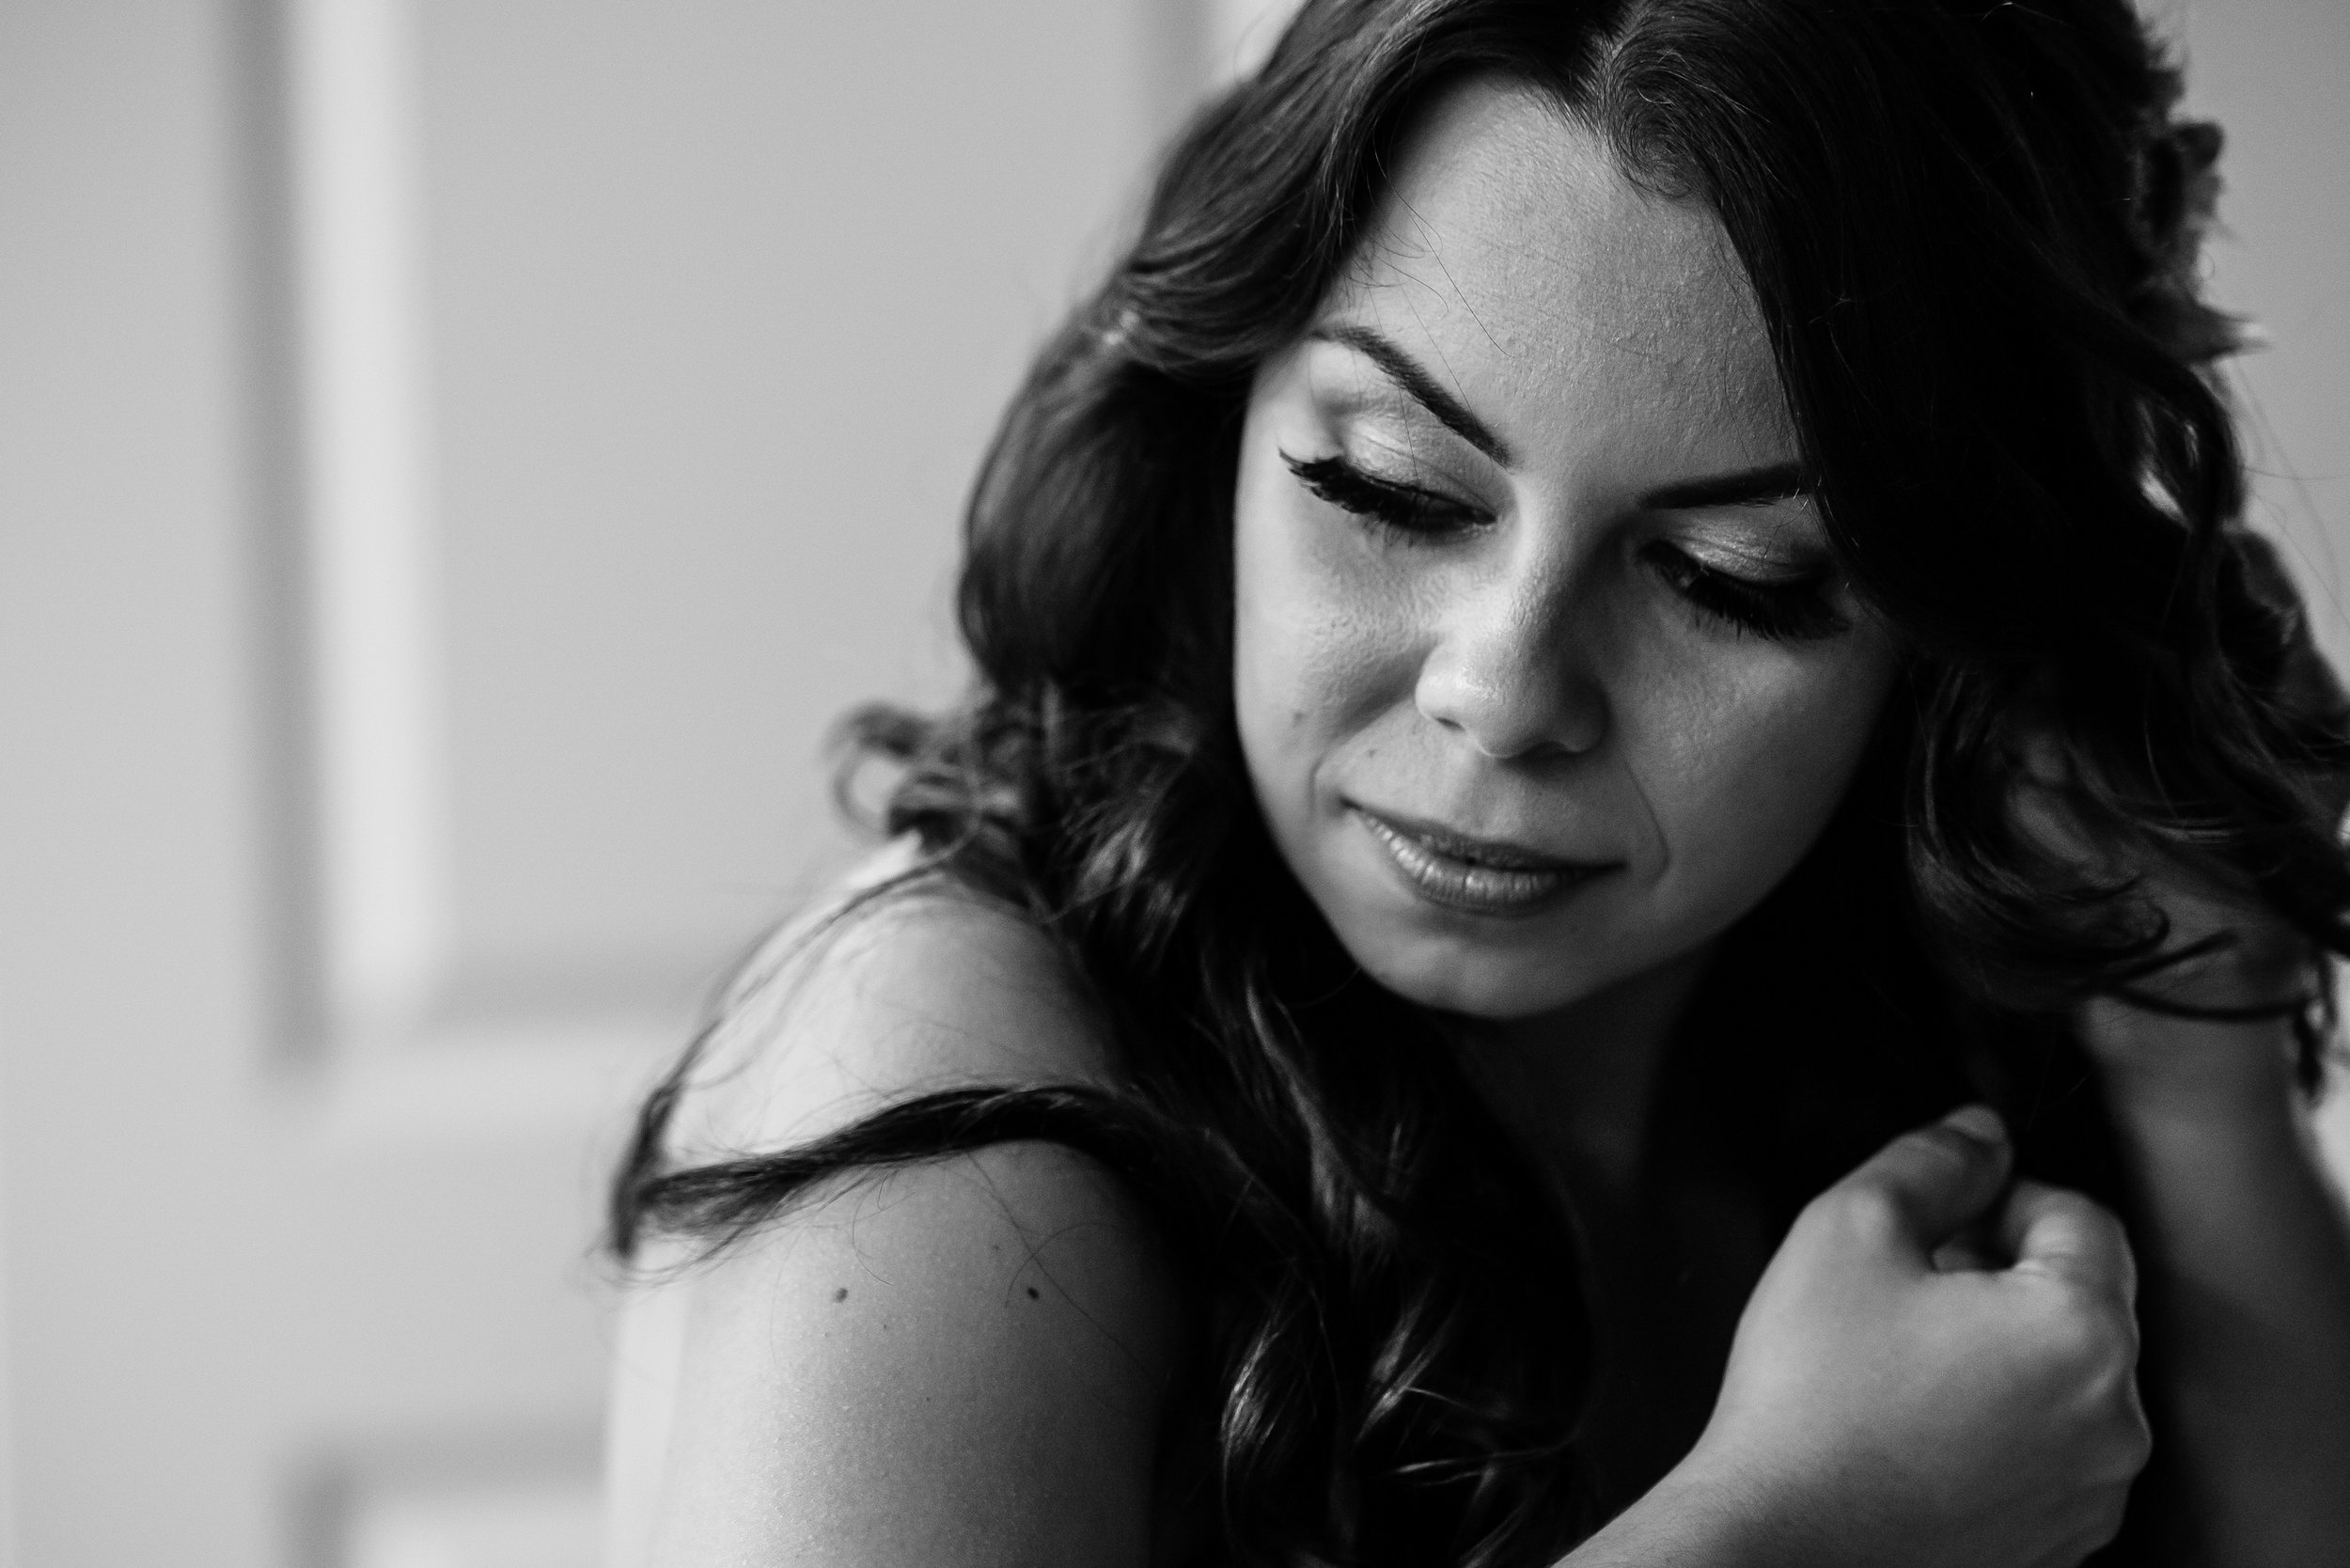 Stefy Hilmer Photography - bride candid during getting ready in the bridal suite.jpg